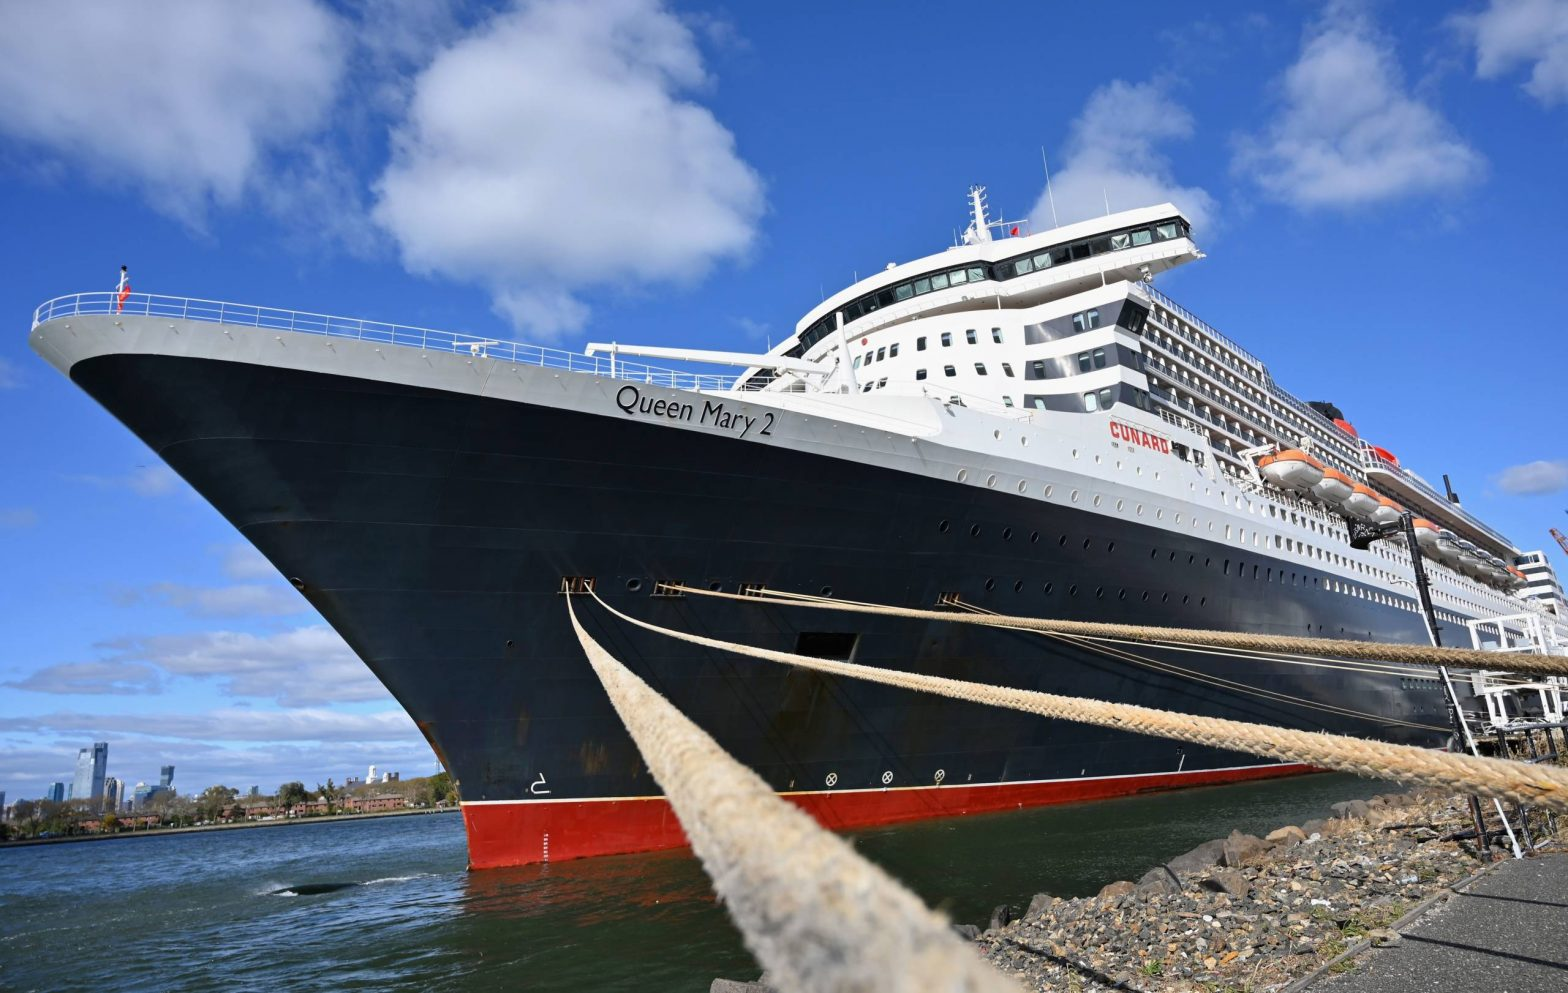 This well-known cruise line just canceled every sailing through March